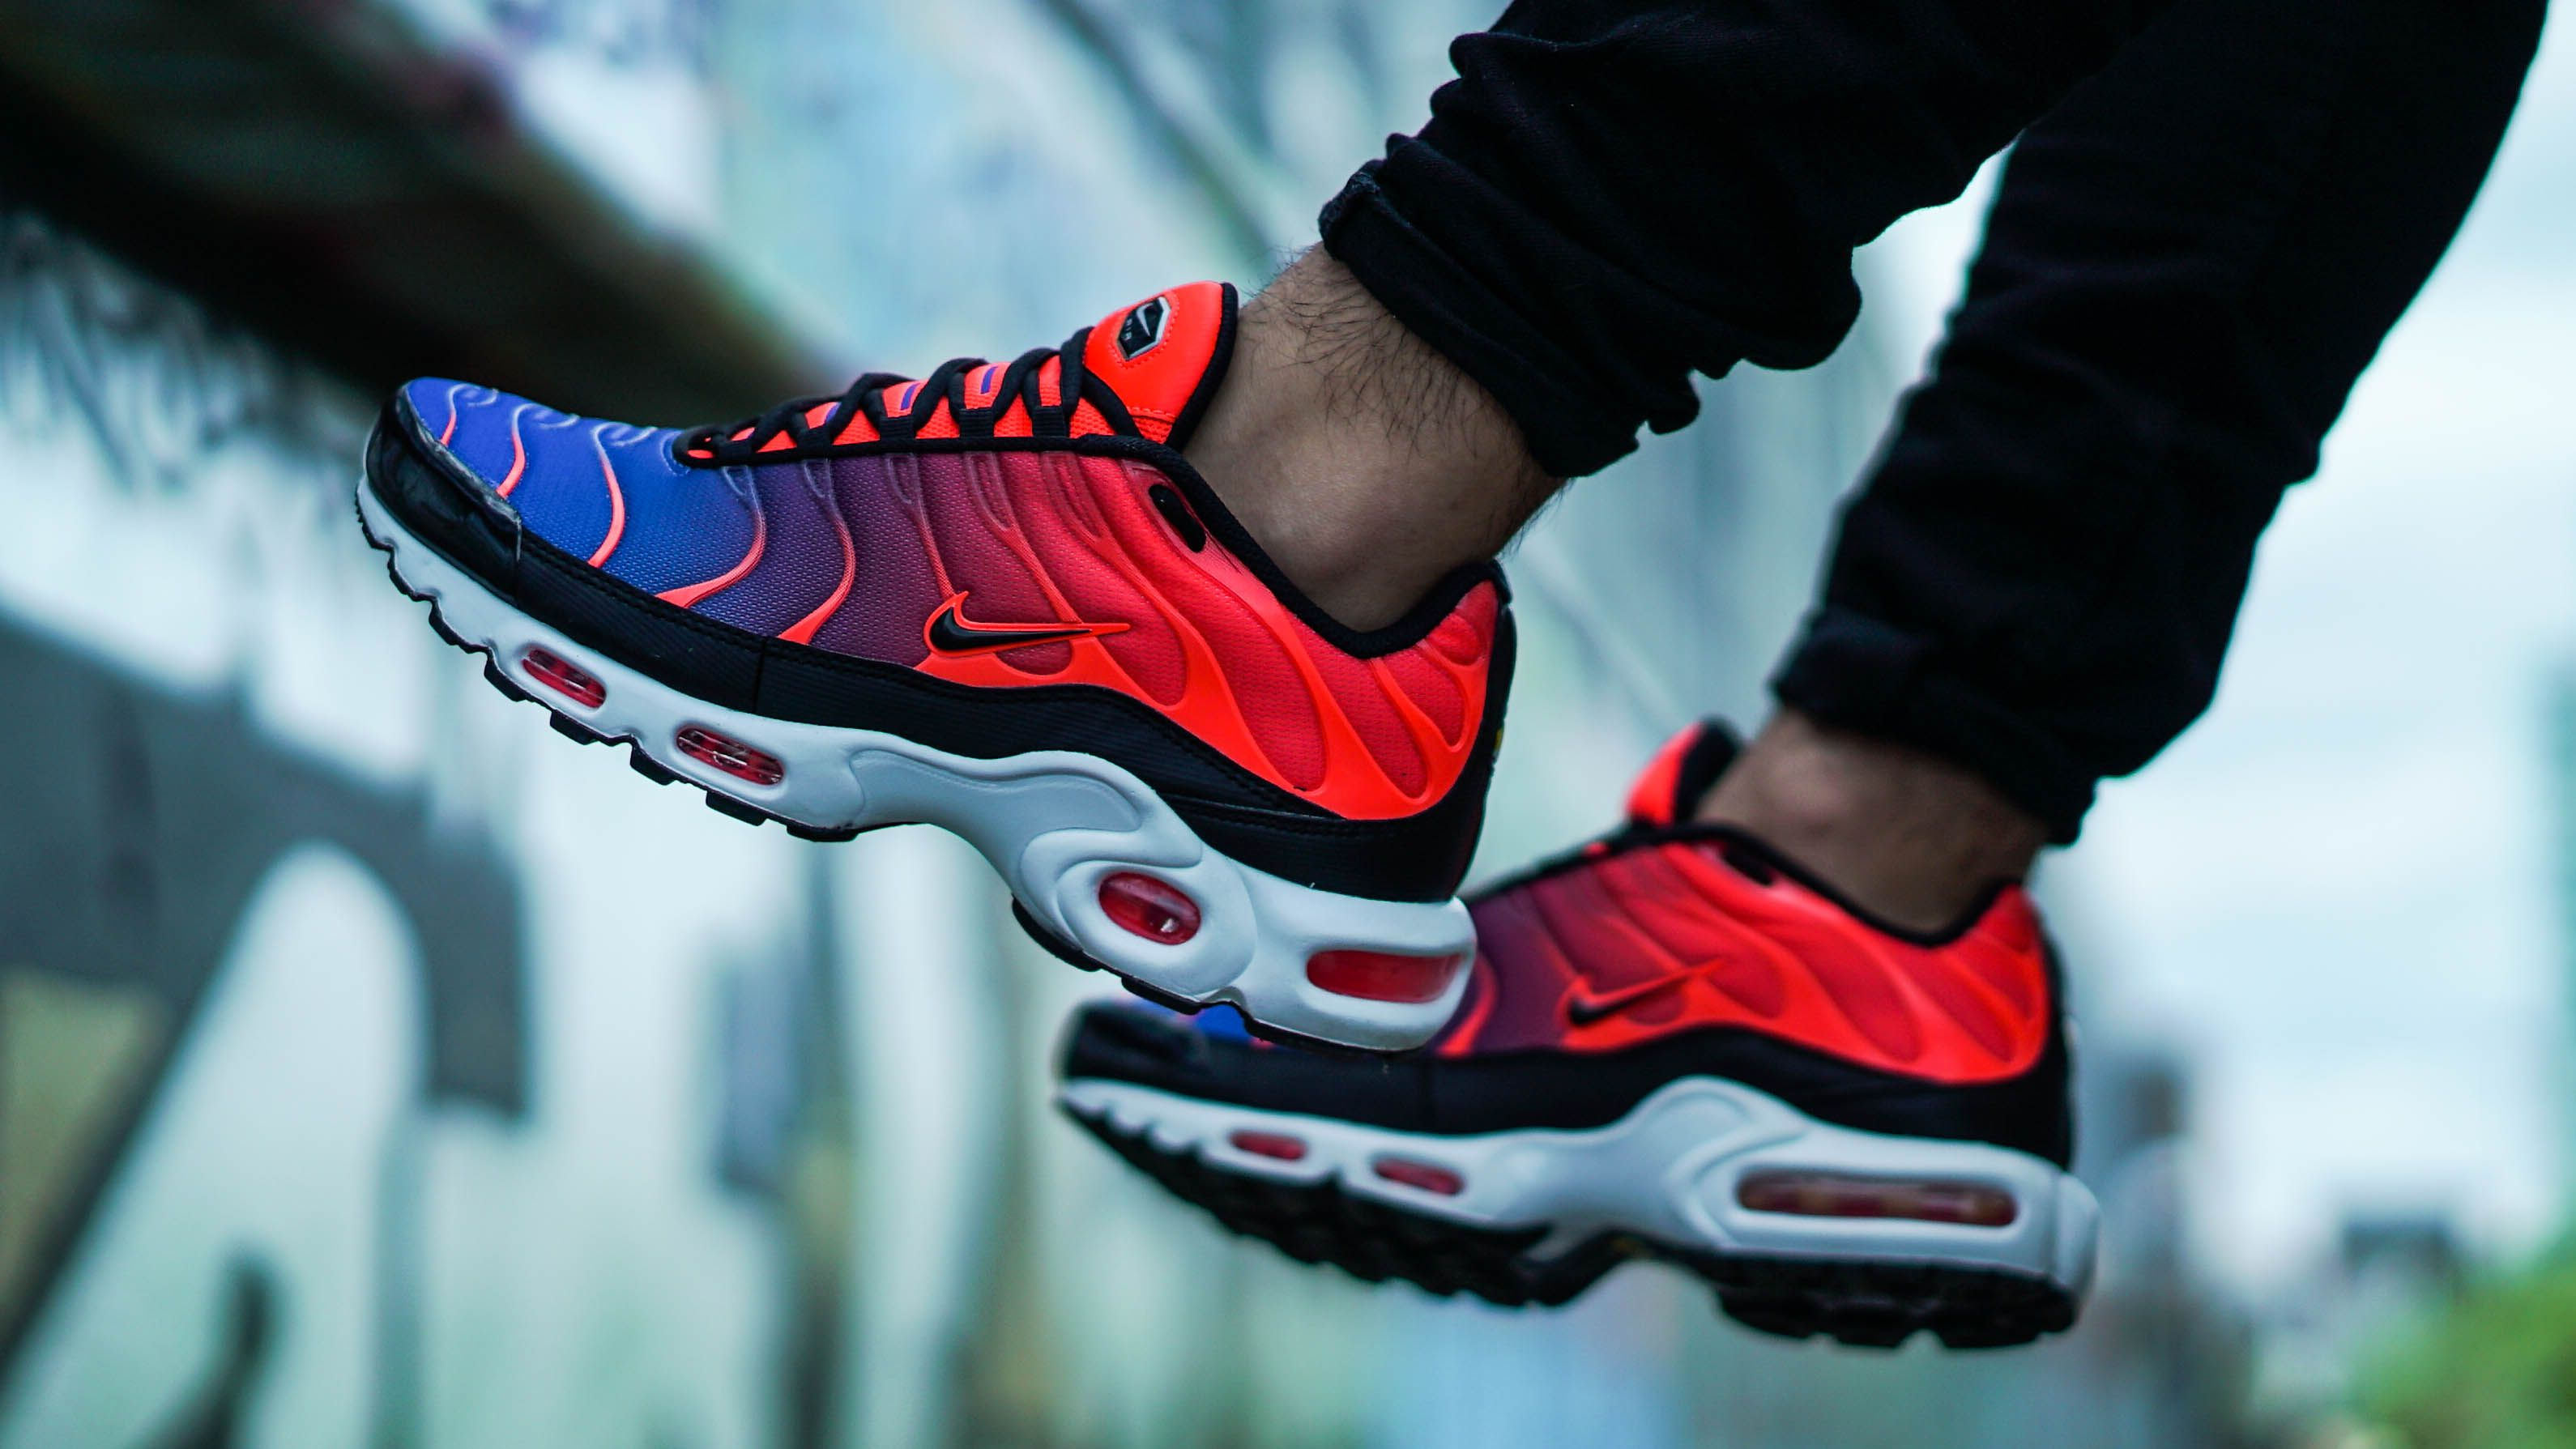 buy online 8dc6f 23351 Nike TN Air Max Plus  Sunset  Is Ideal For Your Summer Rotation   Air Max   The  Sole Supplier